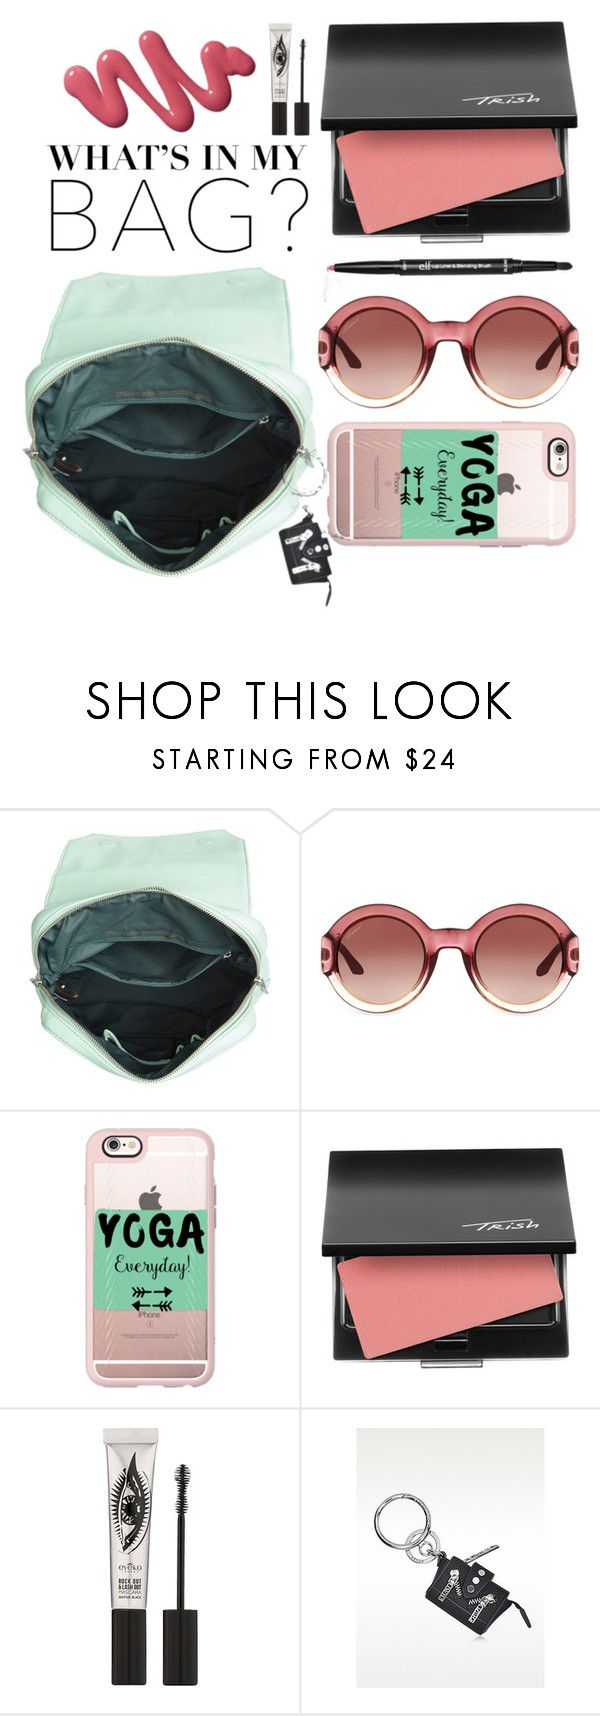 """""""What's in my bag?"""" by cherieaustin ❤ liked on Polyvore featuring Matt & Nat, Gucci, Casetify, Trish McEvoy and Eyeko"""